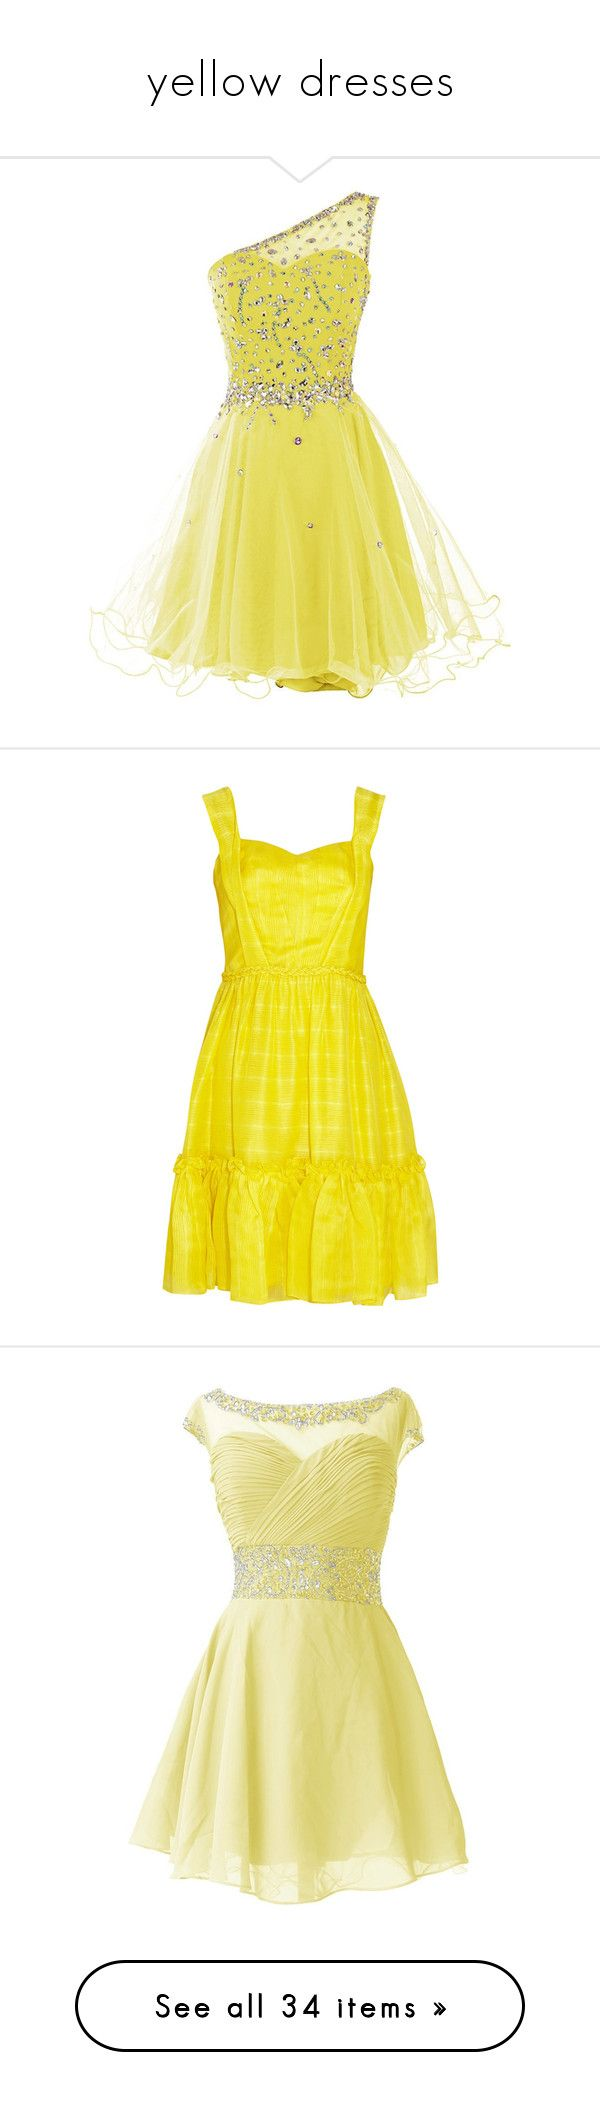 """yellow dresses"" by megsjessd99 ❤ liked on Polyvore featuring dresses, prom dresses, beaded prom dresses, short prom dresses, tulle prom dress, one shoulder prom dresses, short dresses, oscar de la renta, party dresses and marigold"